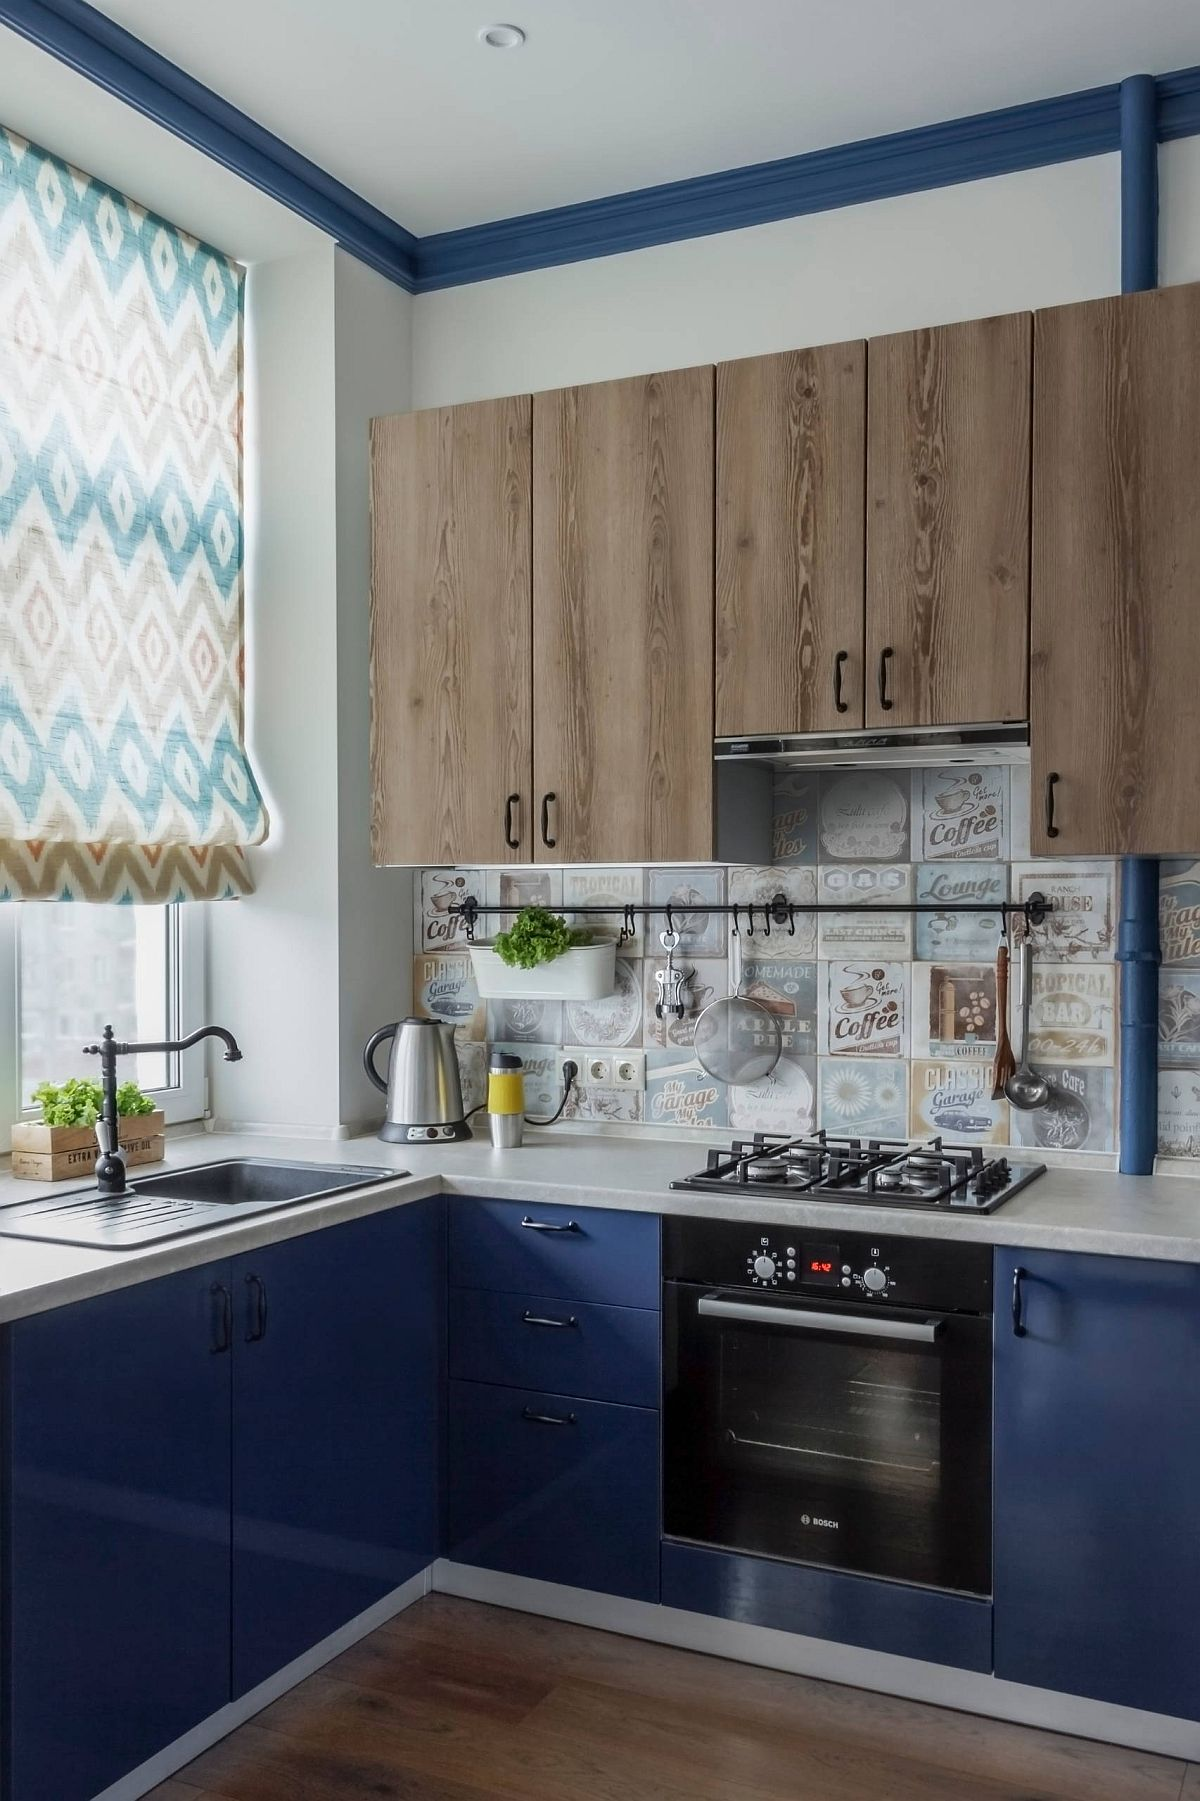 Lovely-use-of-blue-inside-the-tiny-eclectic-kitchen-28572